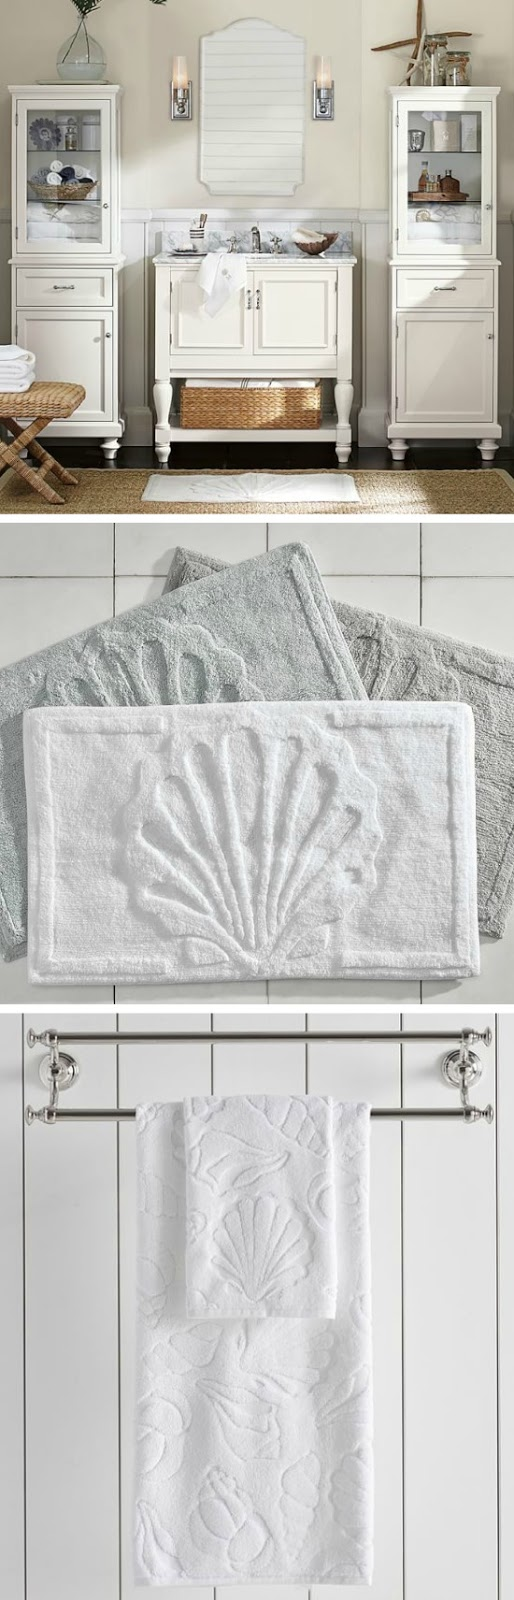 Shell Bath Towels & Rug | Pottery Barn Catalog